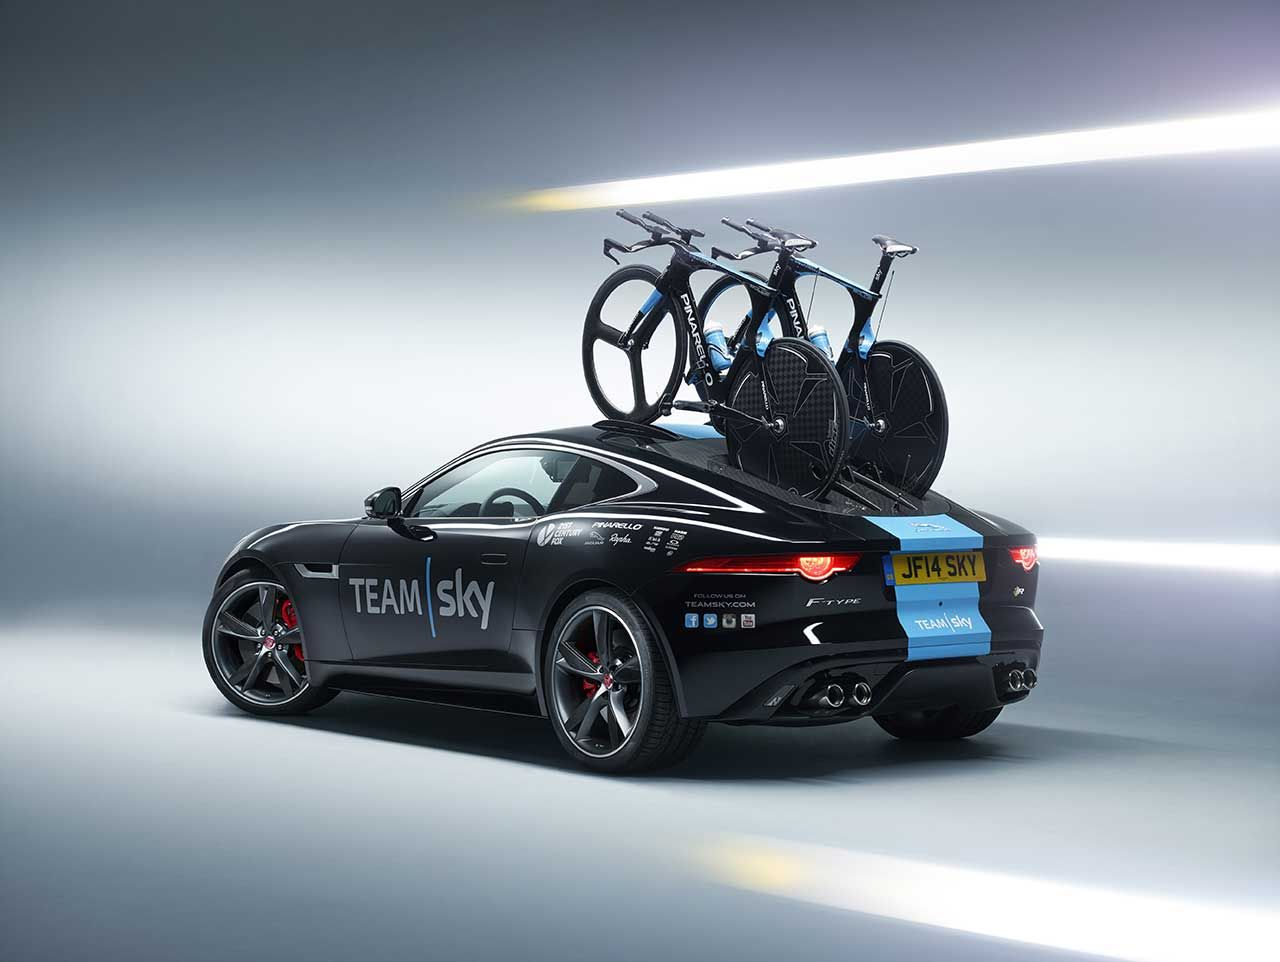 Jaguar Land Rover Special Vehicle Operations unveils Team Sky's F-Type Coupe support vehicle  http://www.4wheelsnews.com/jaguar-land-rover-special-vehicle-operations-unveils-team-skys-f-type-coupe/